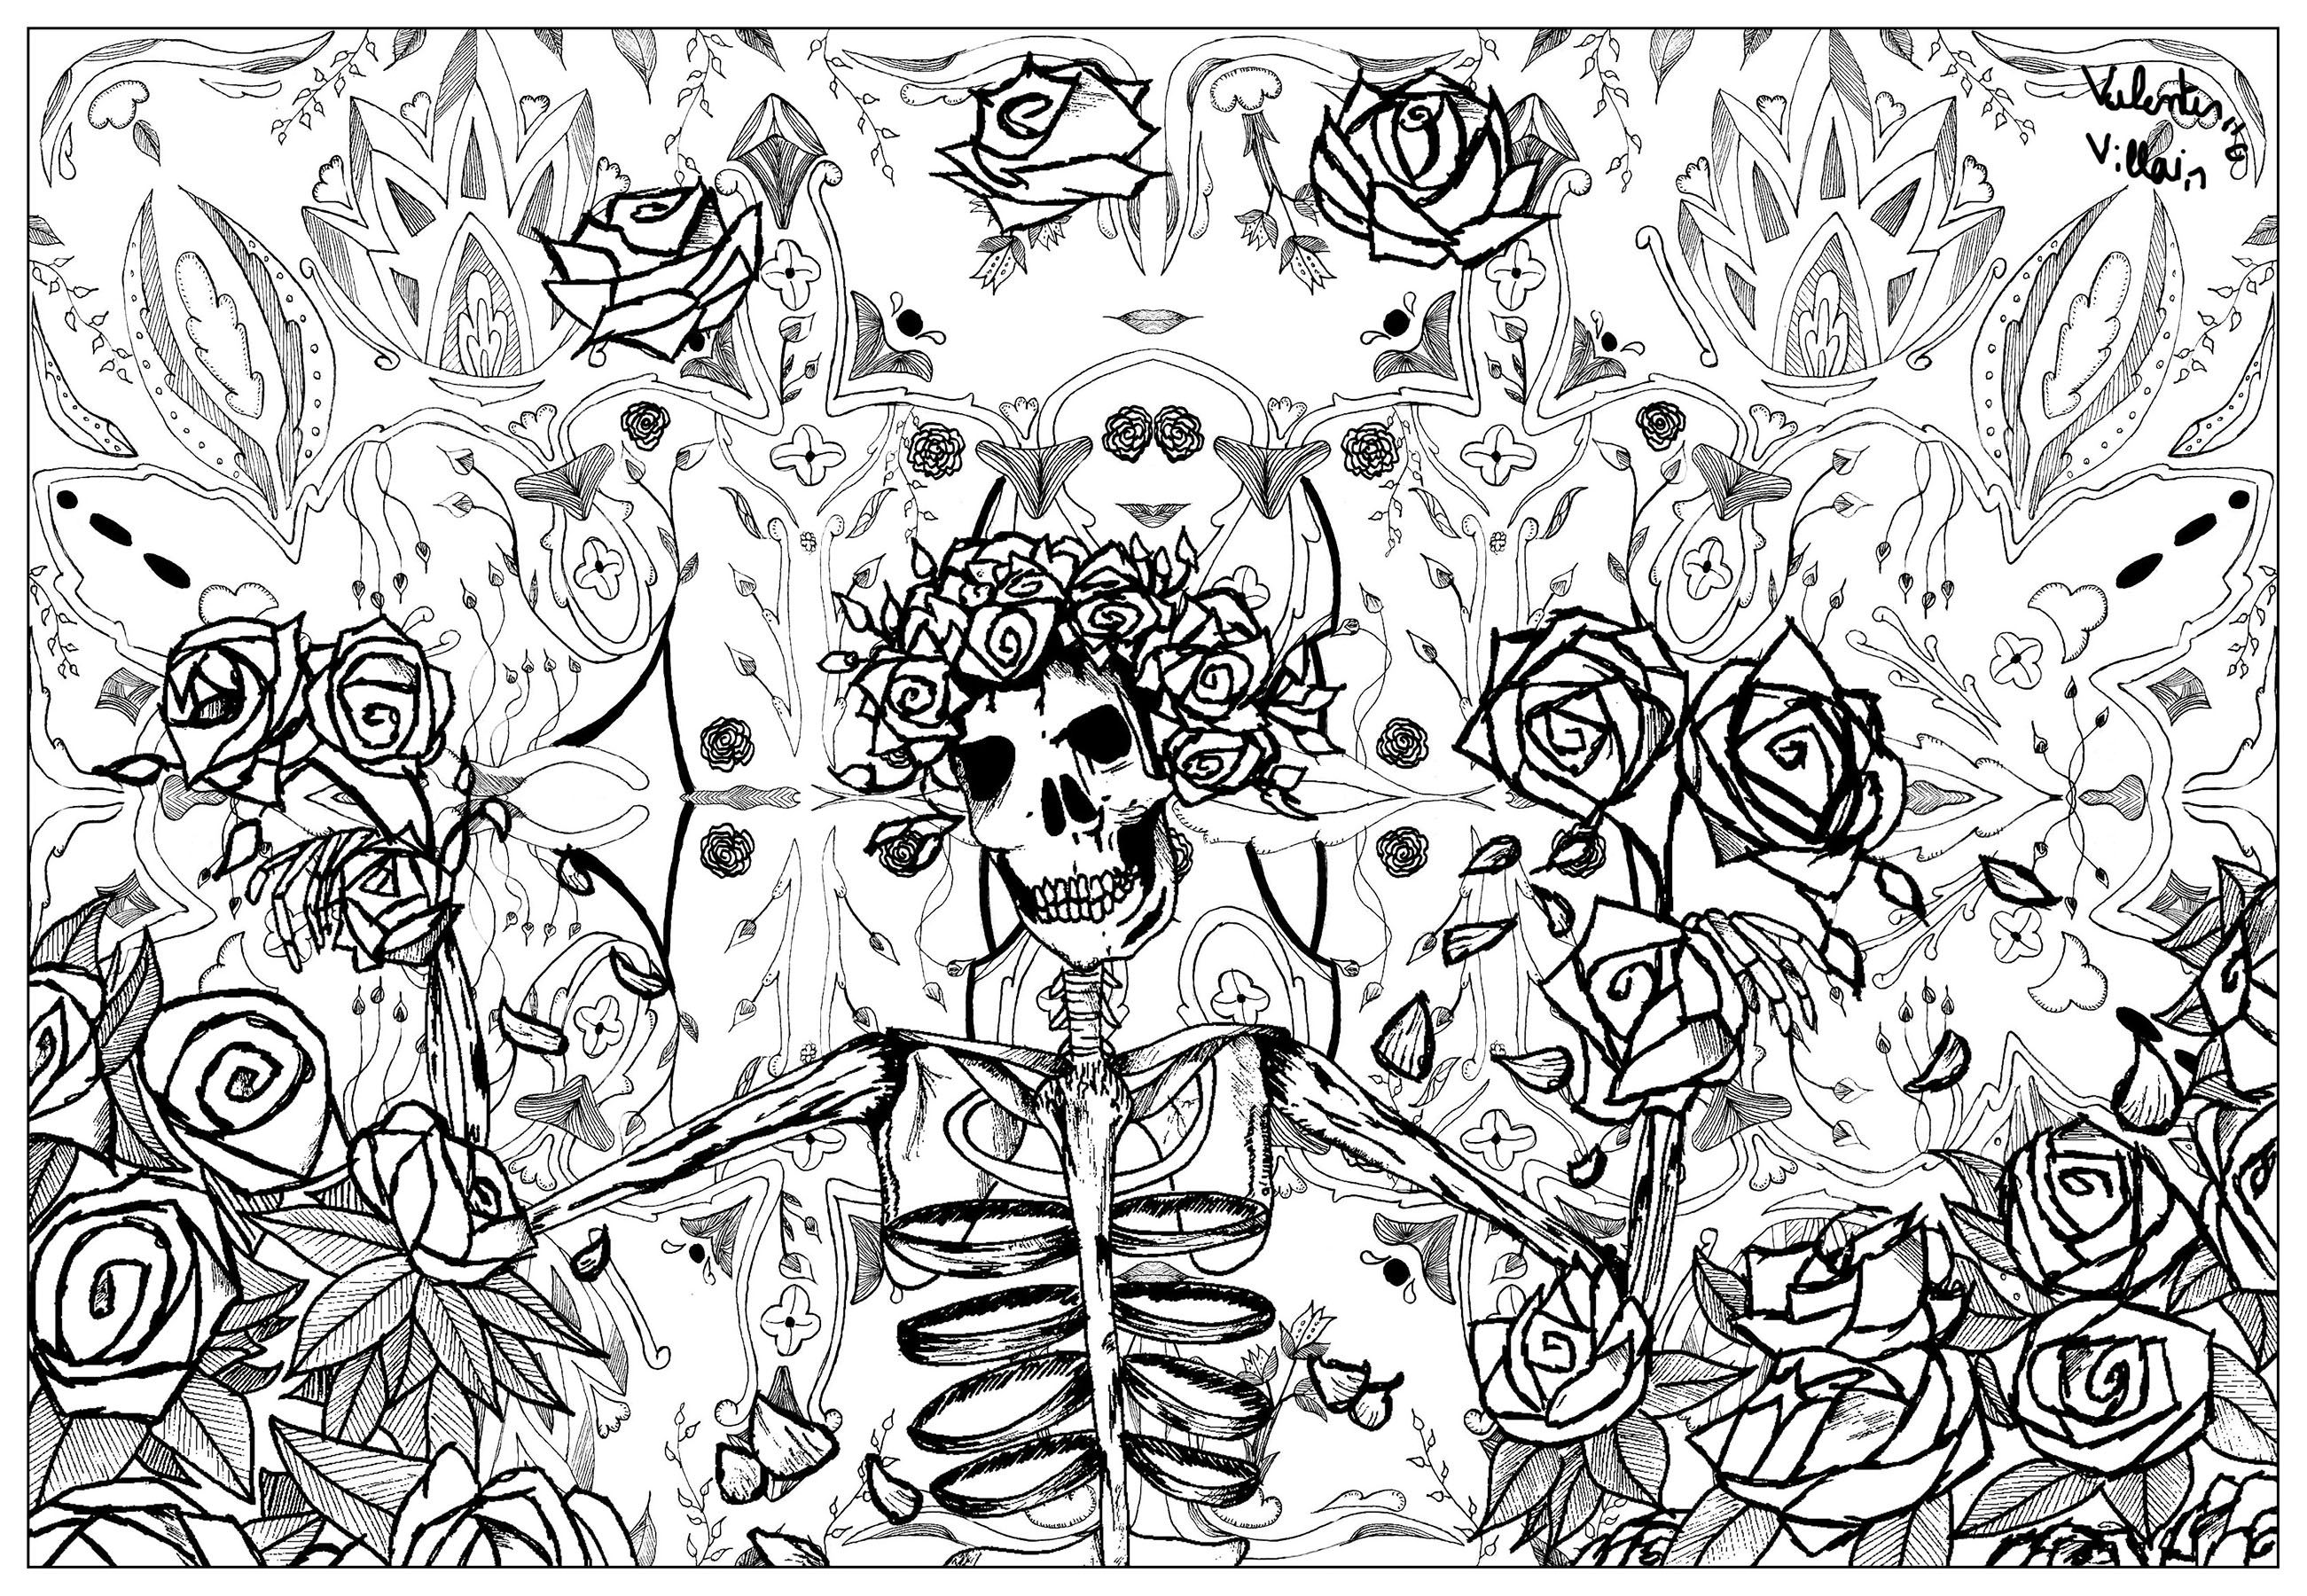 Coloring page adult grateful dead art by valentin